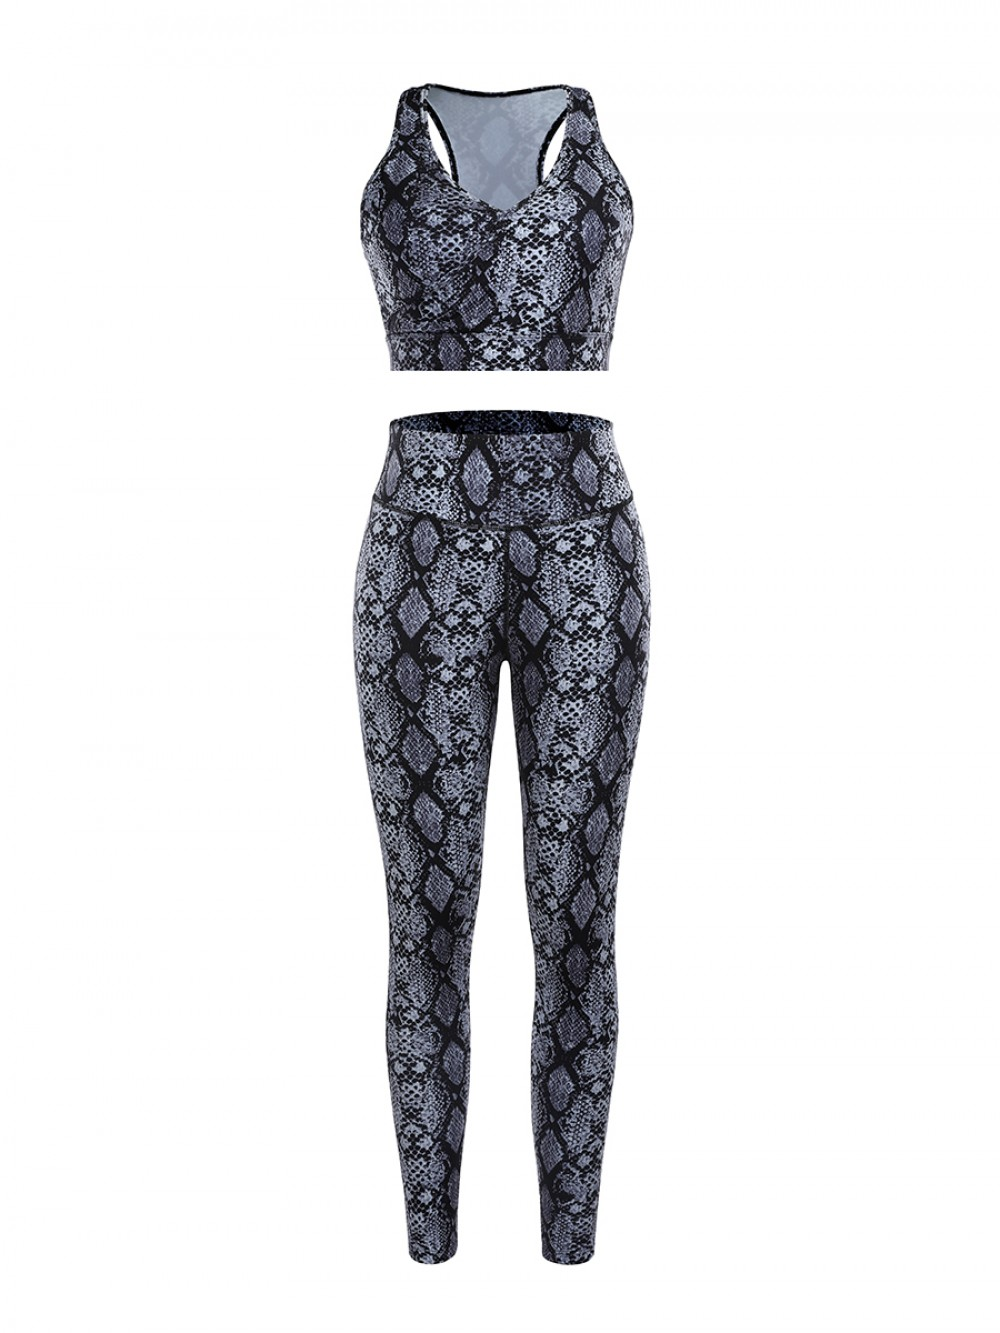 Gray Snake Pattern High Rise Racerback Sweat Suit For Workout